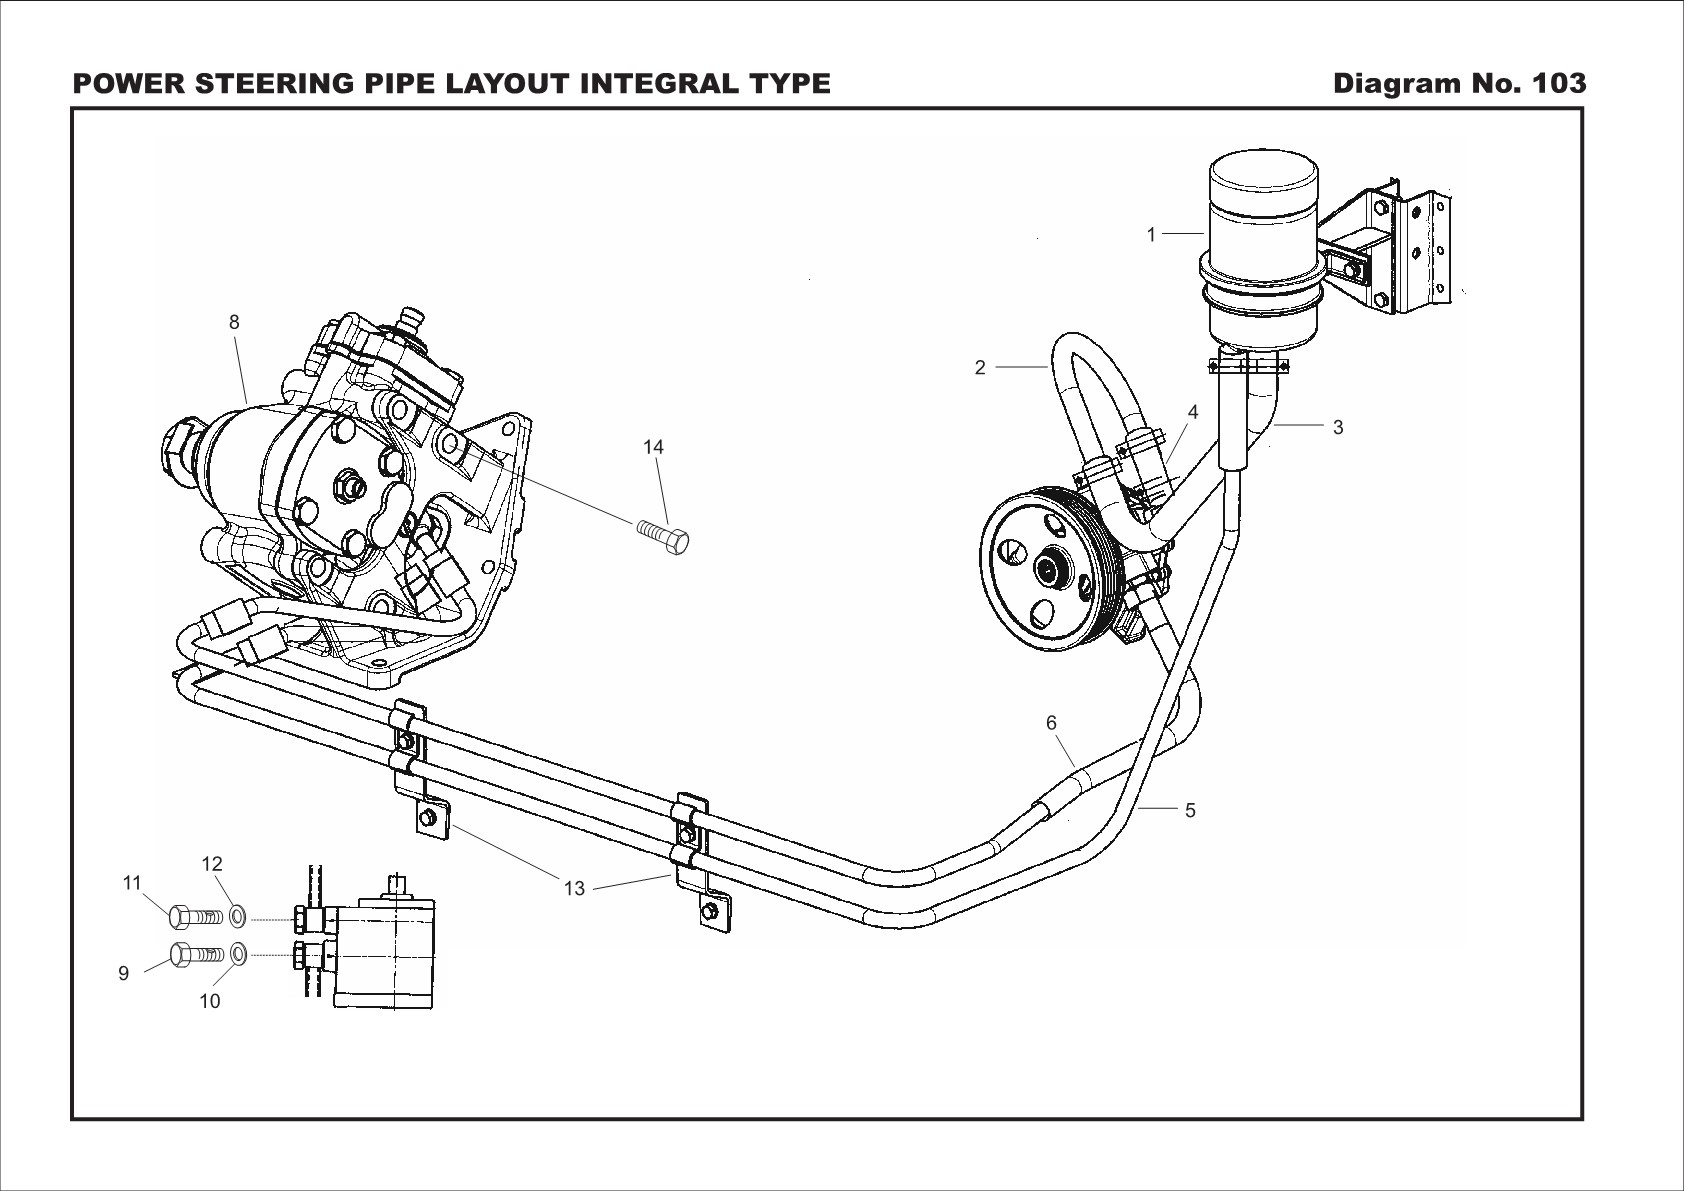 Power Steering assembly Diagram Traveller Crdi Steering assembly Power Steering Pipe Layout Integral